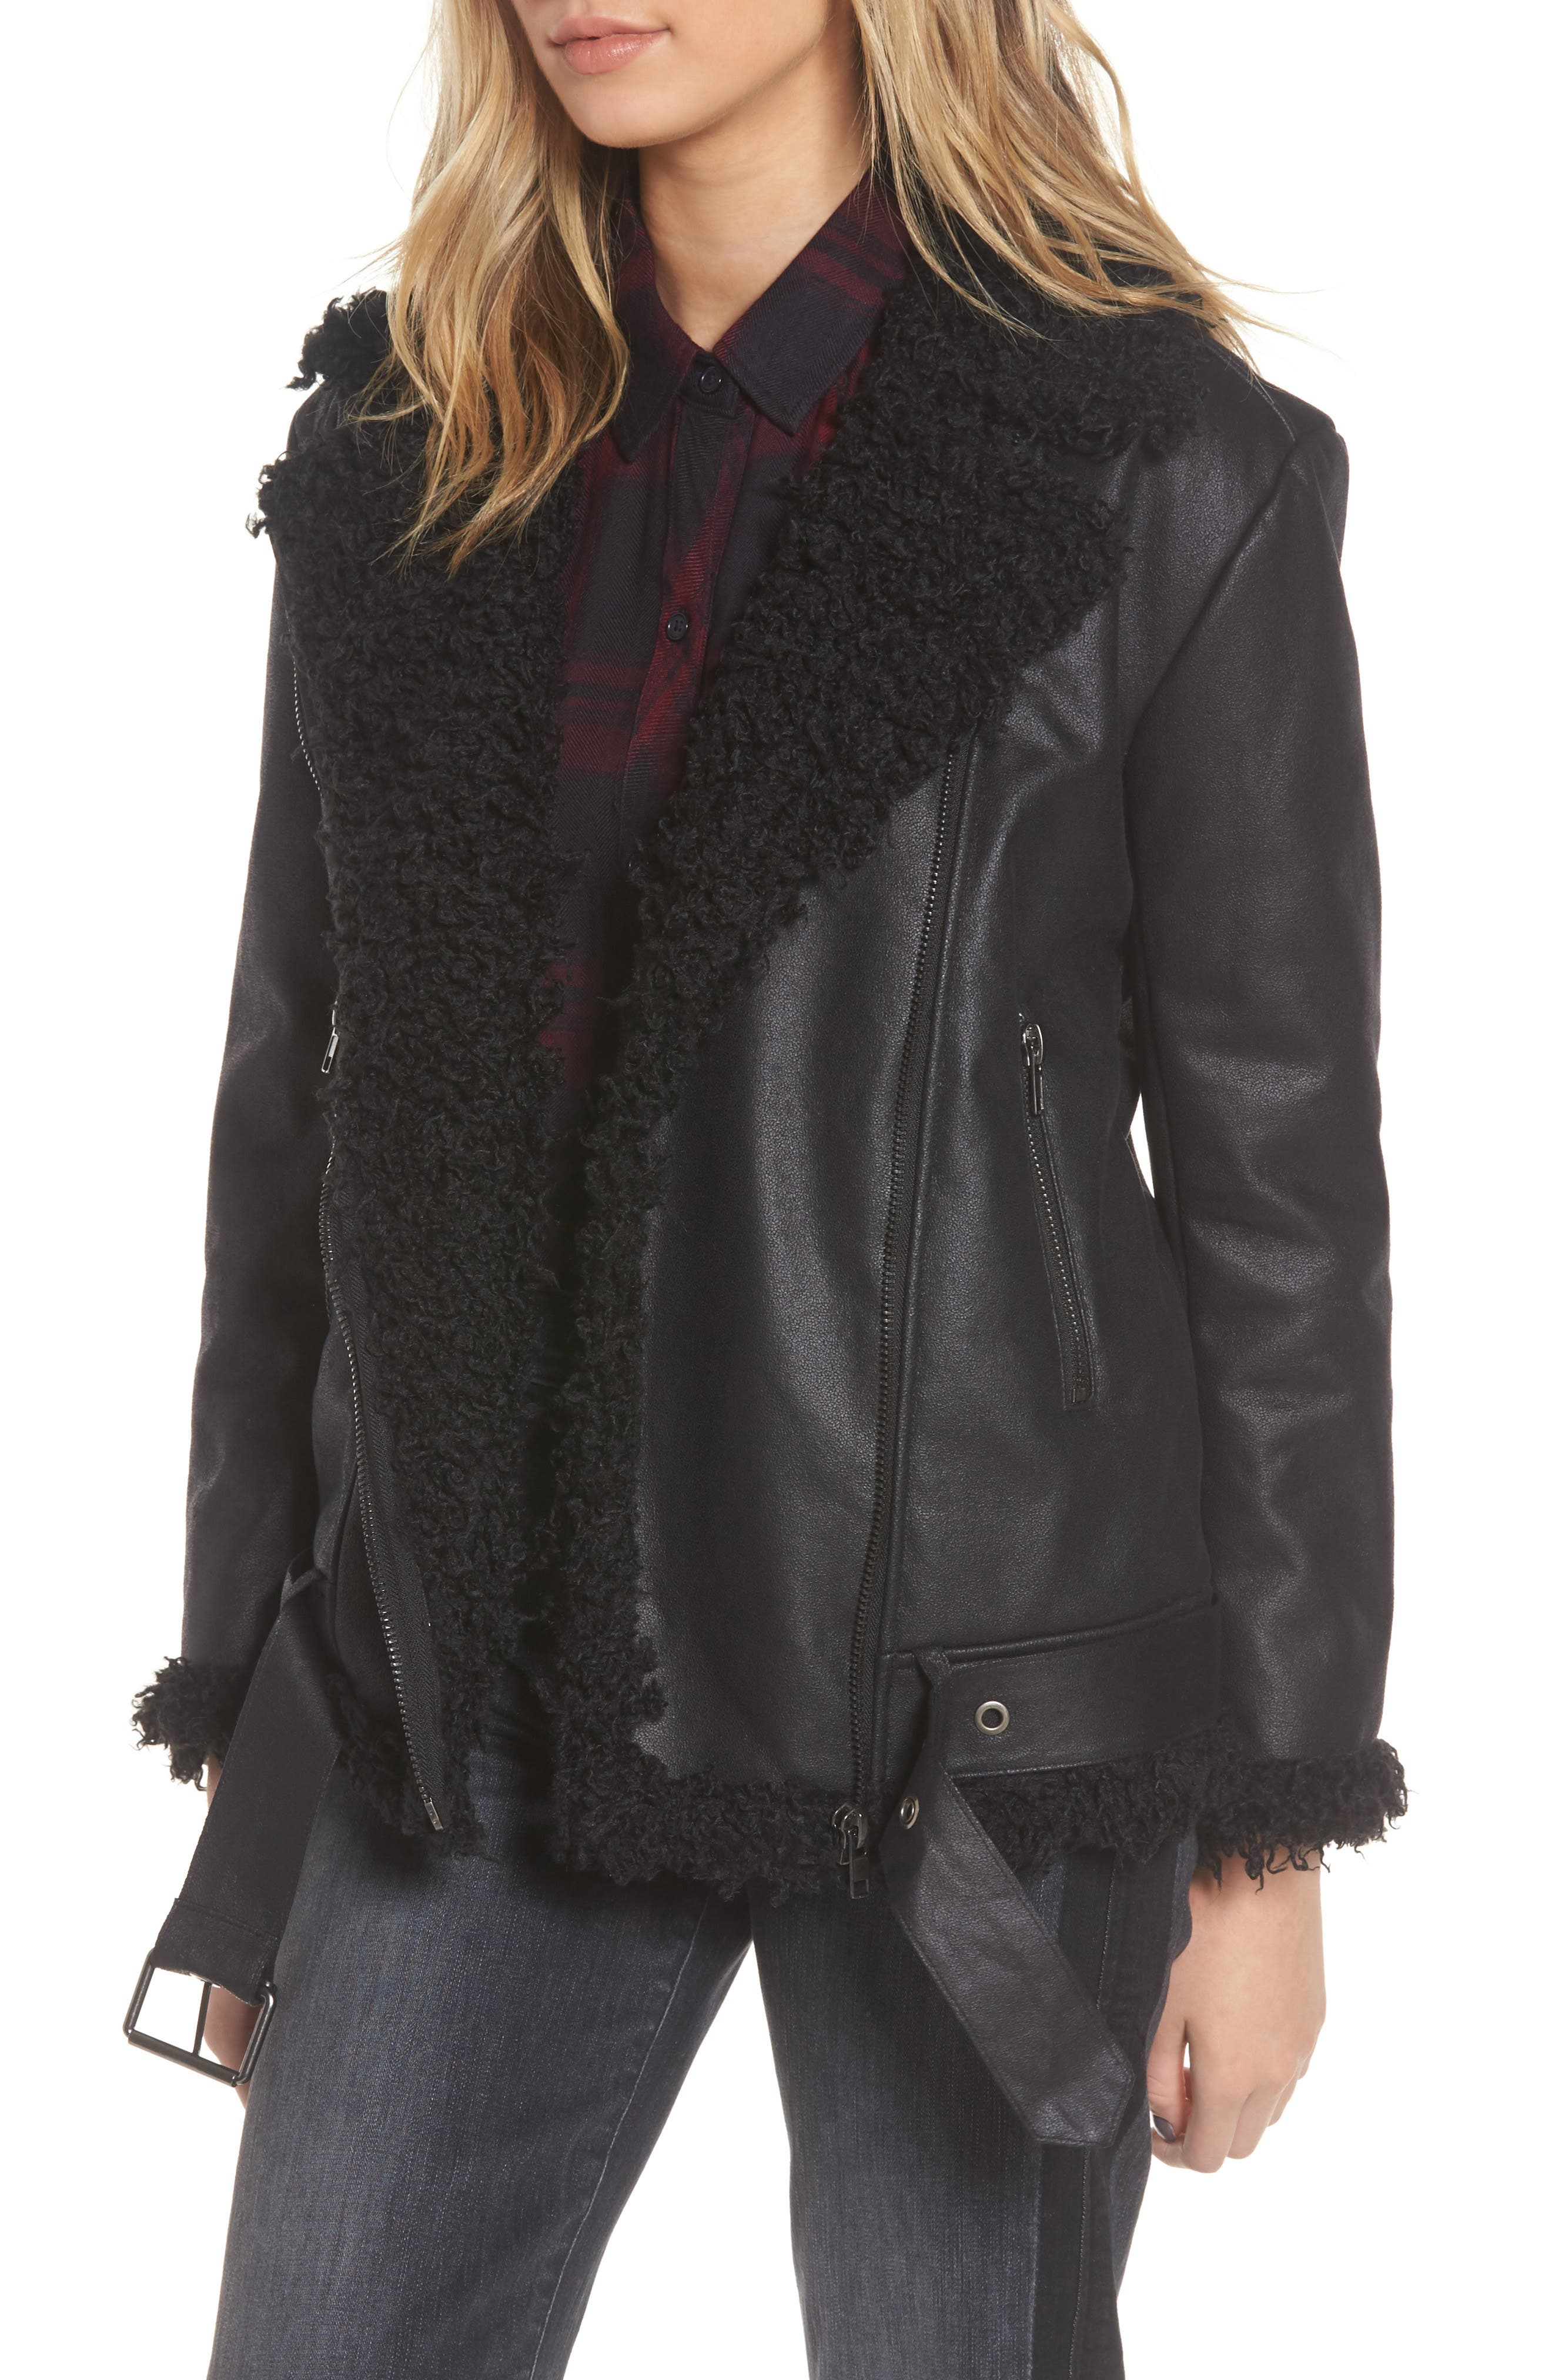 Bosworth Faux Shearling Jacket,                         Main,                         color, 001